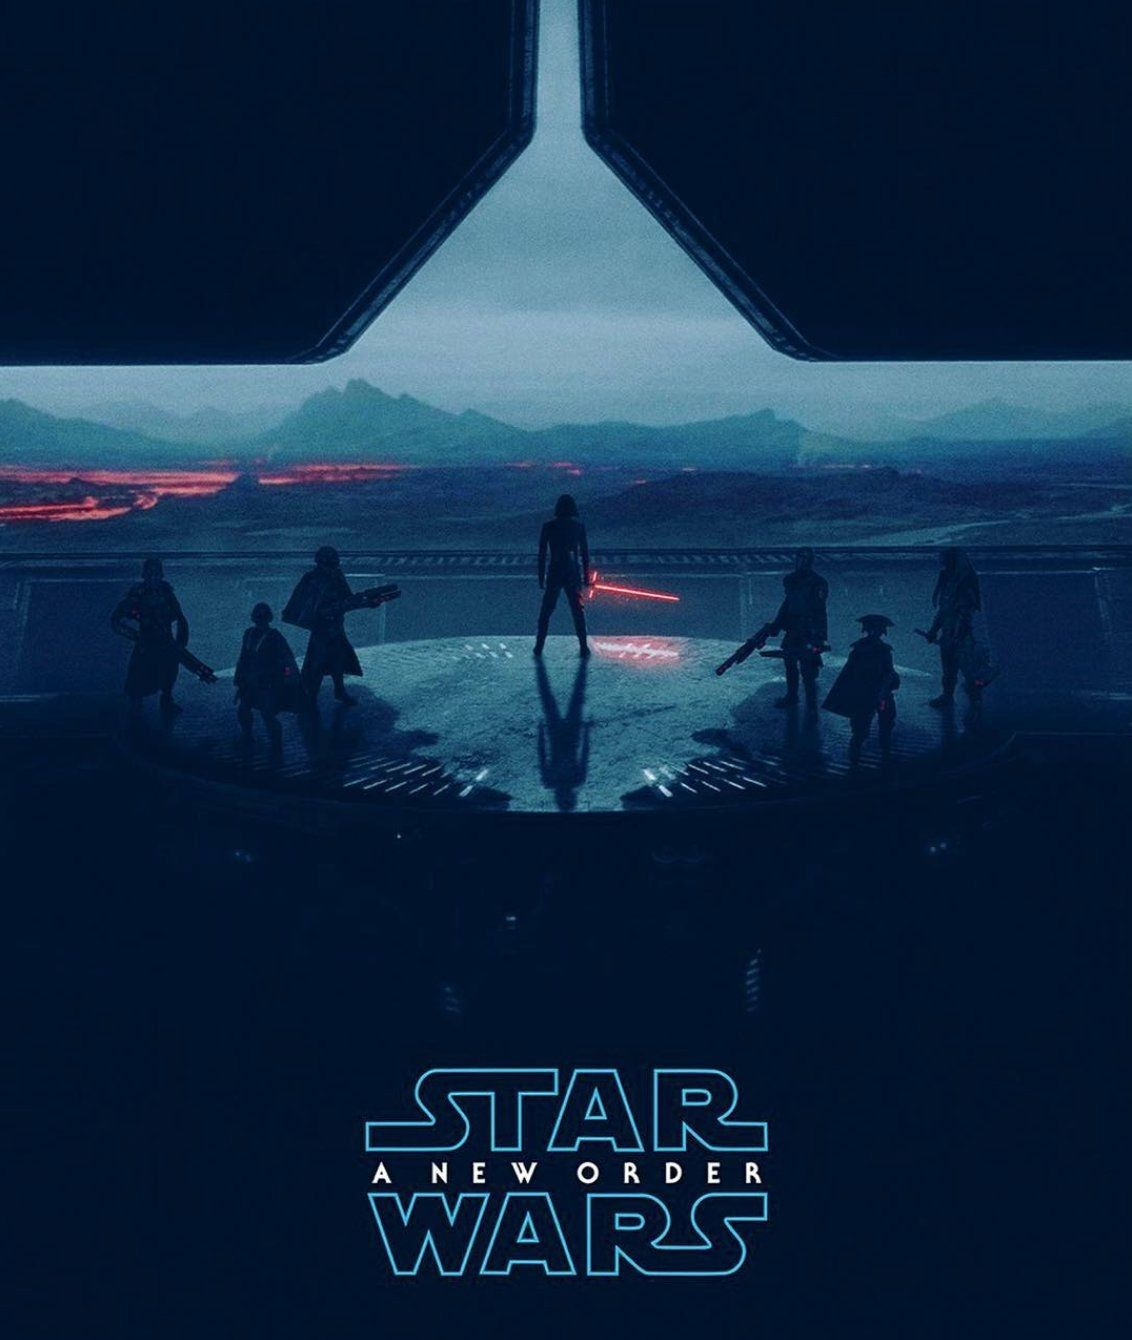 29 Star Wars Episode 9 Wallpapers On Wallpapersafari